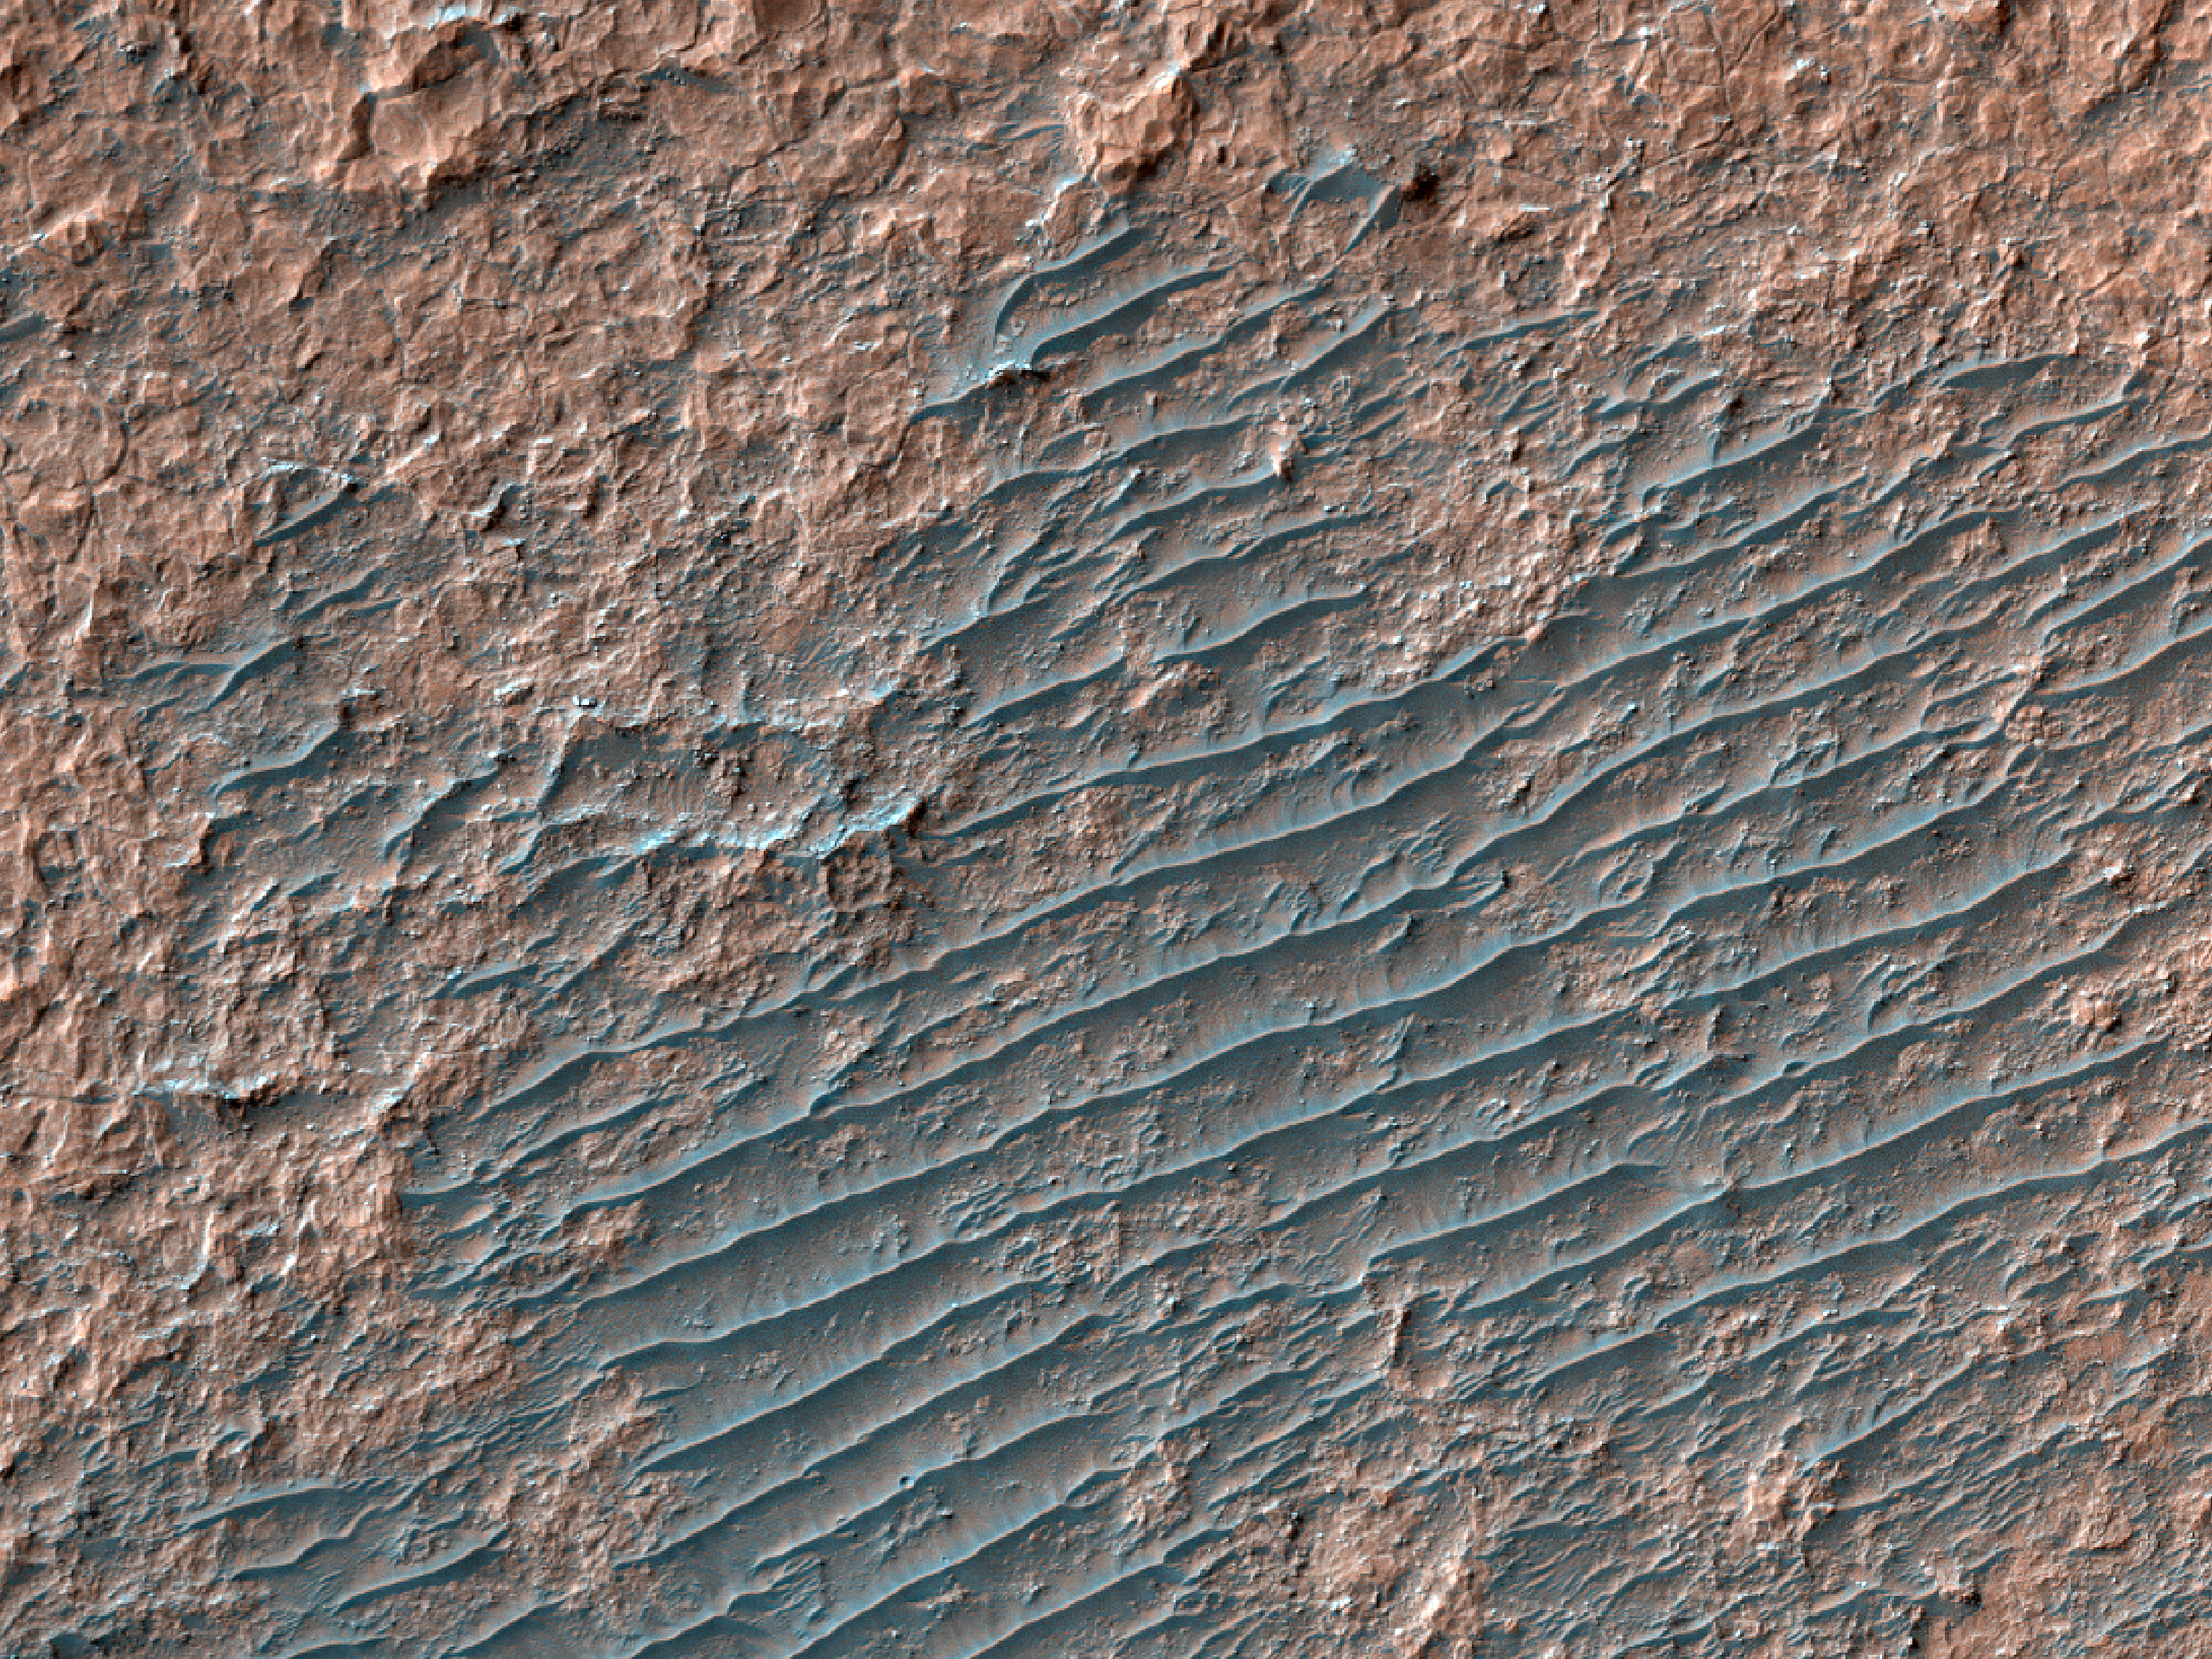 Light-Toned Crater Floor Material